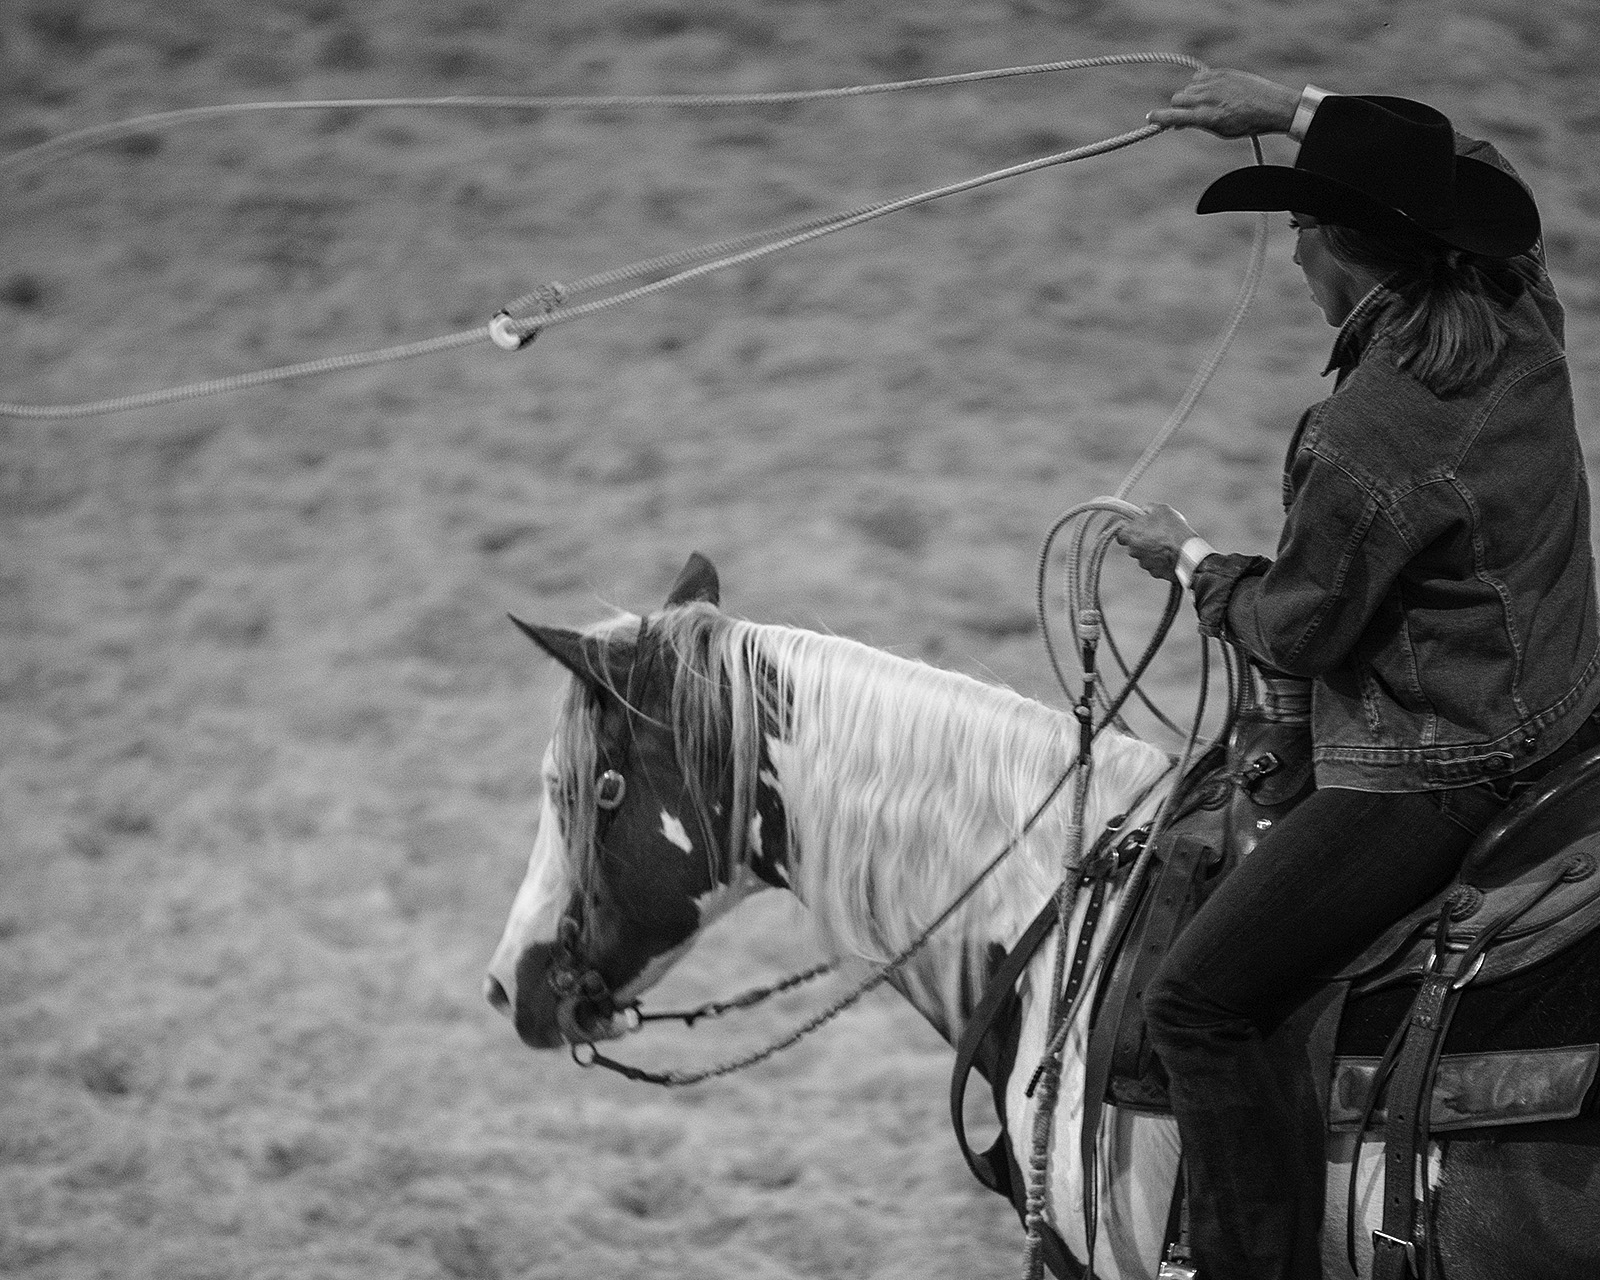 Roping takes practice